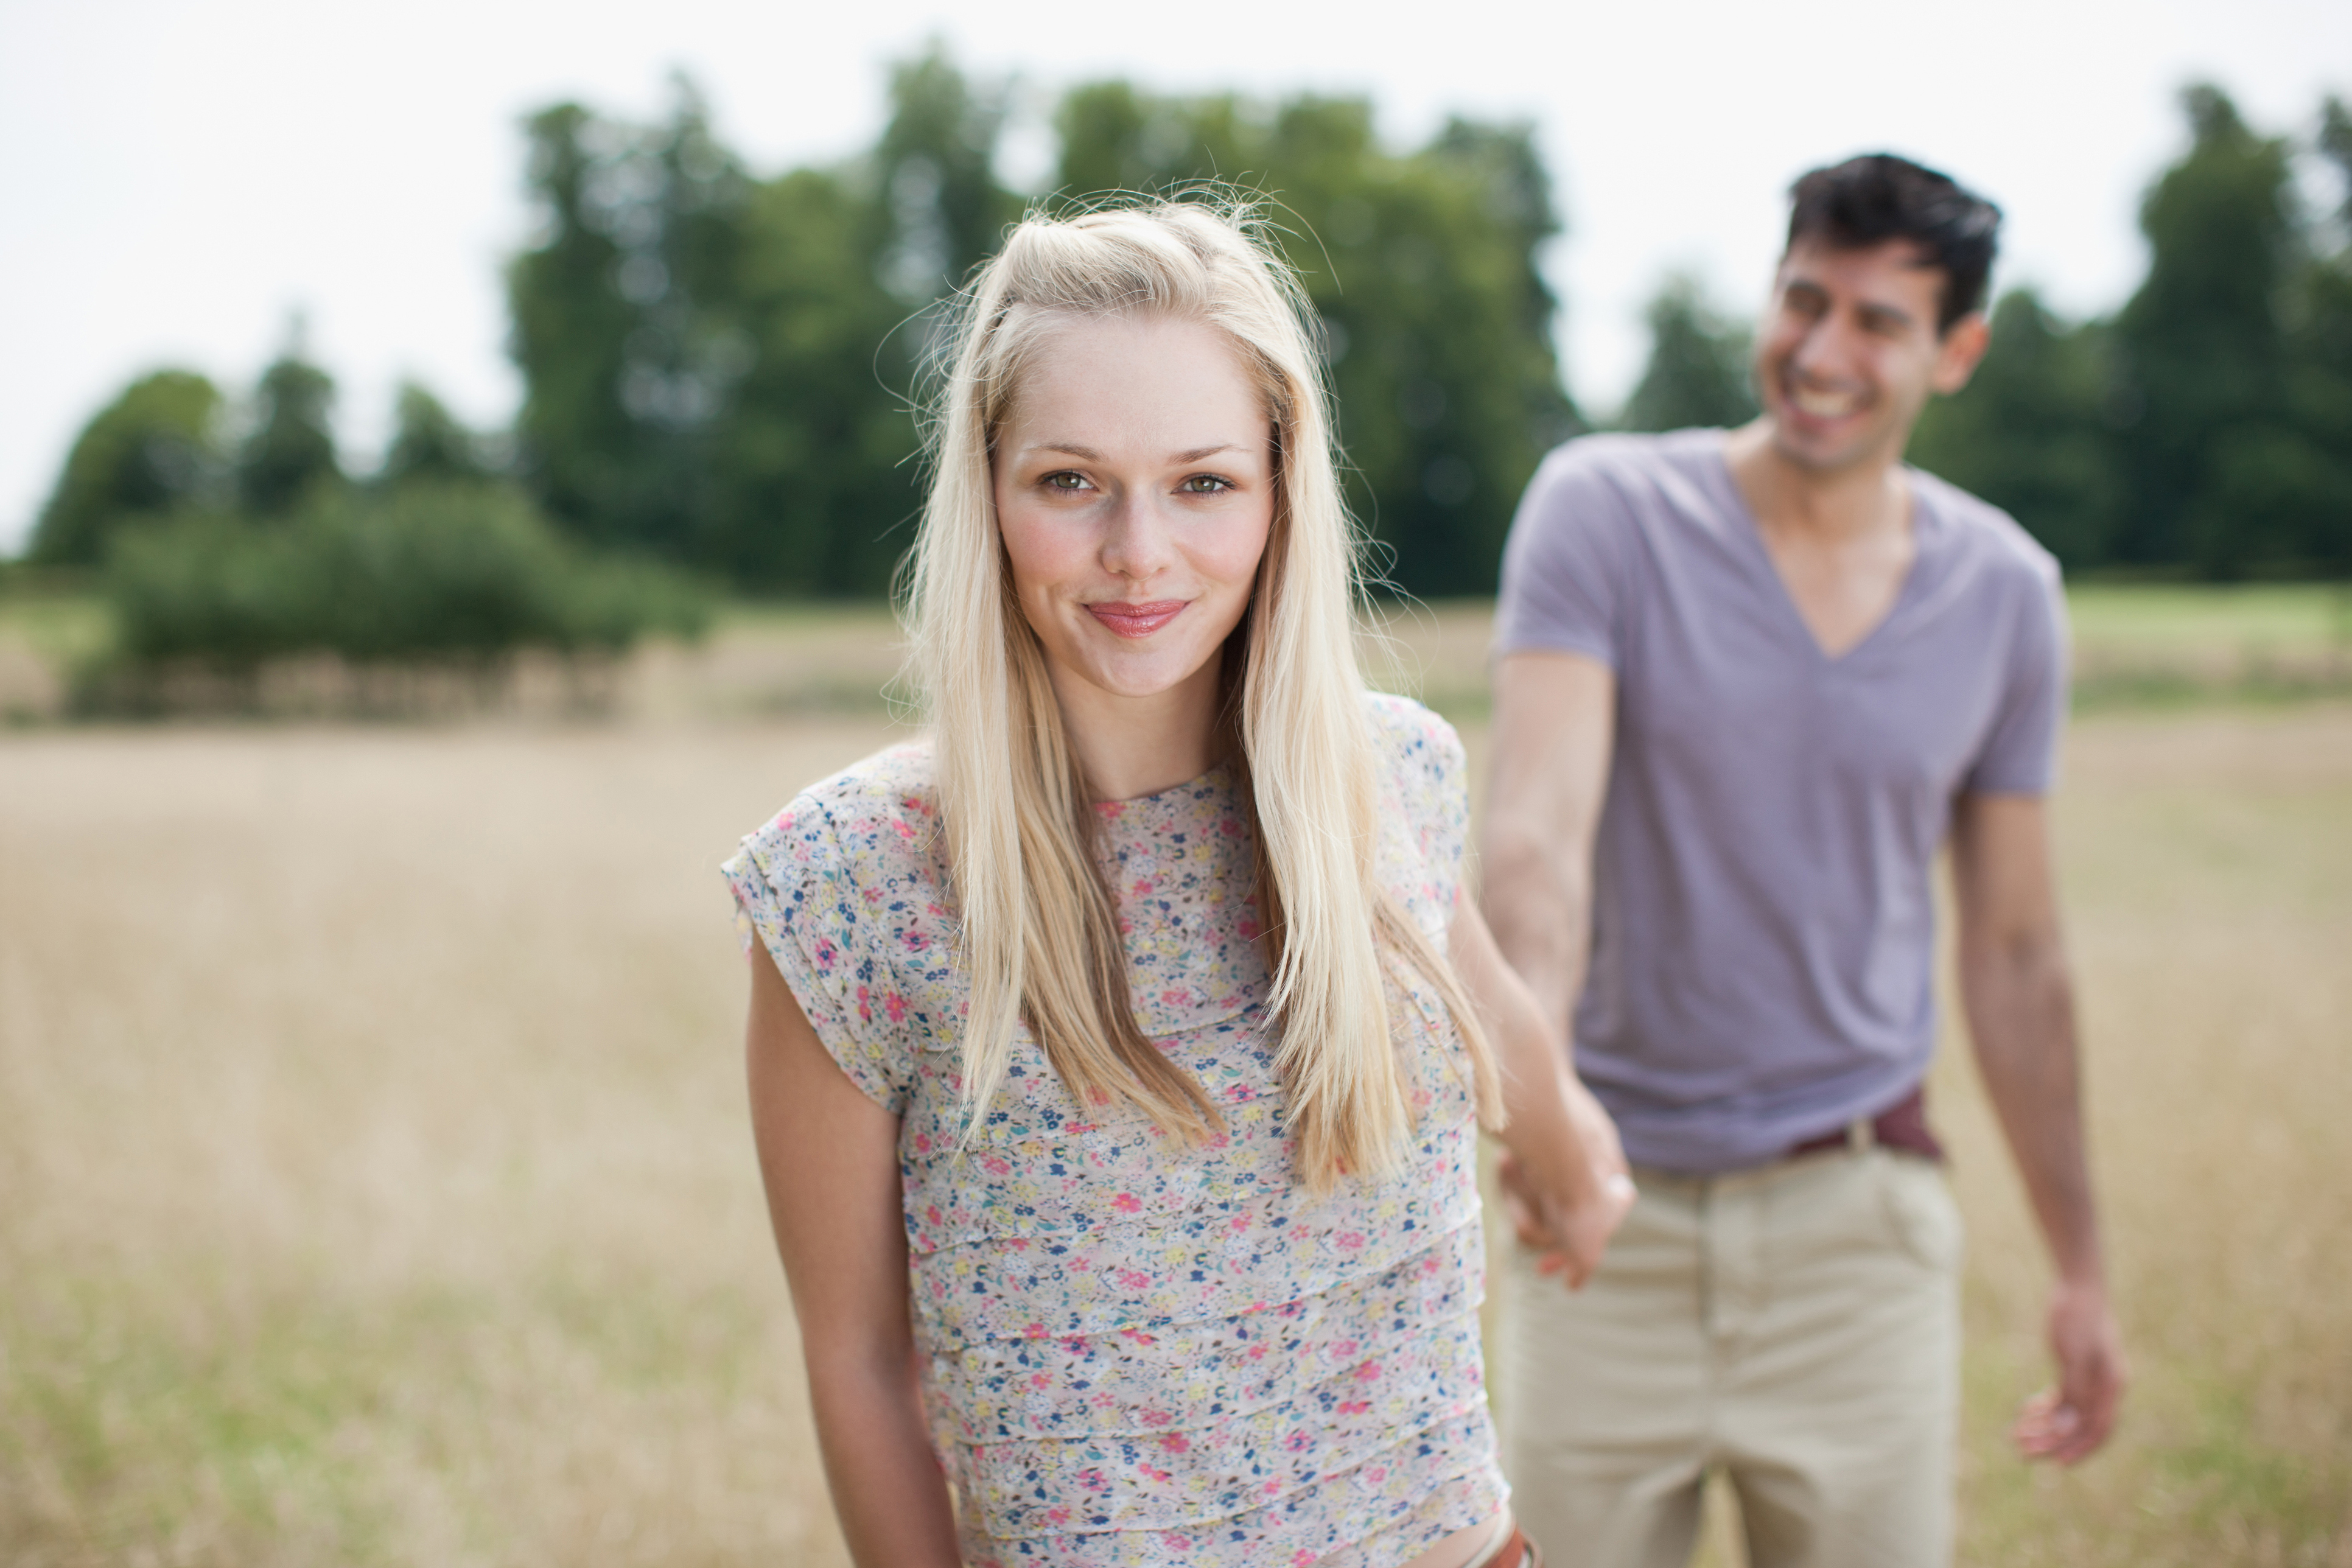 Does Online Dating Help You In Getting A Romantic Partner?